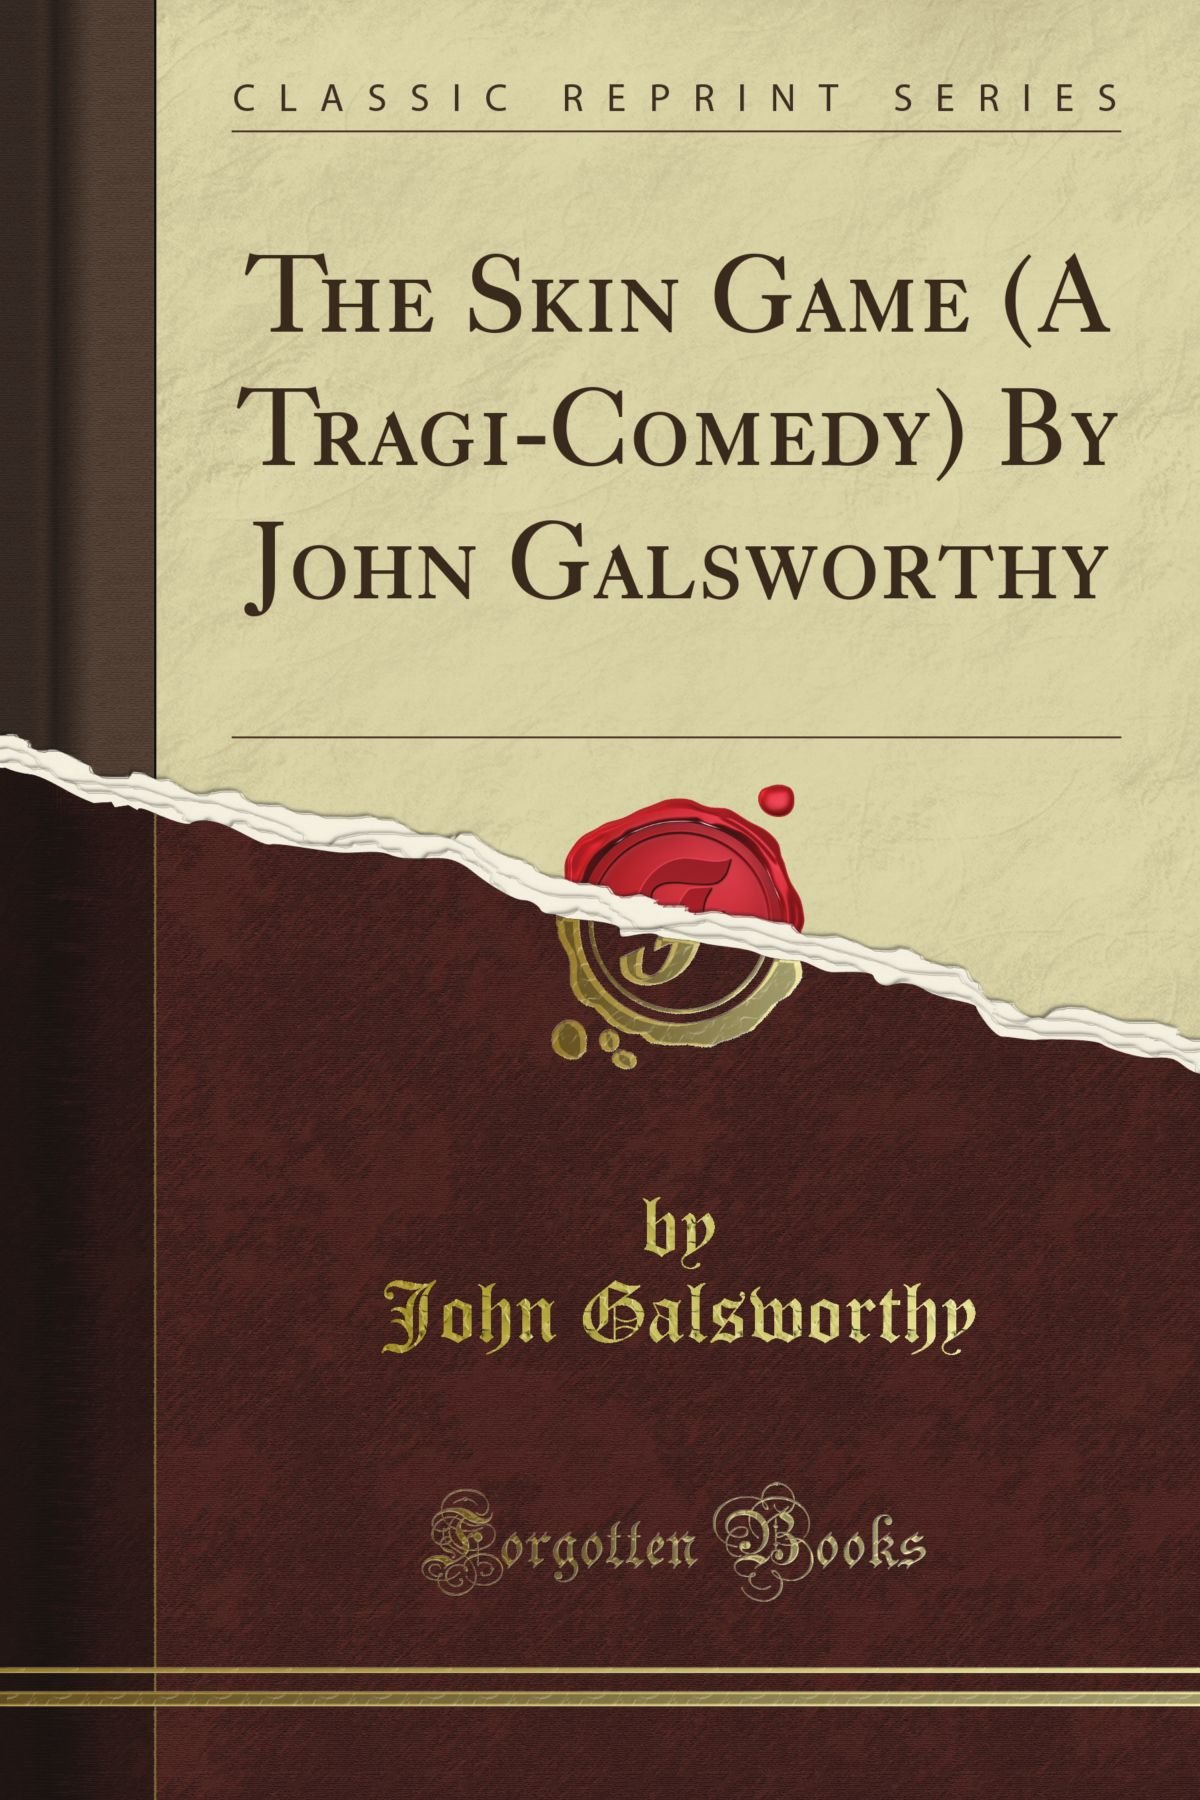 The Skin Game (A Tragi-Comedy) By John Galsworthy (Classic Reprint) ebook